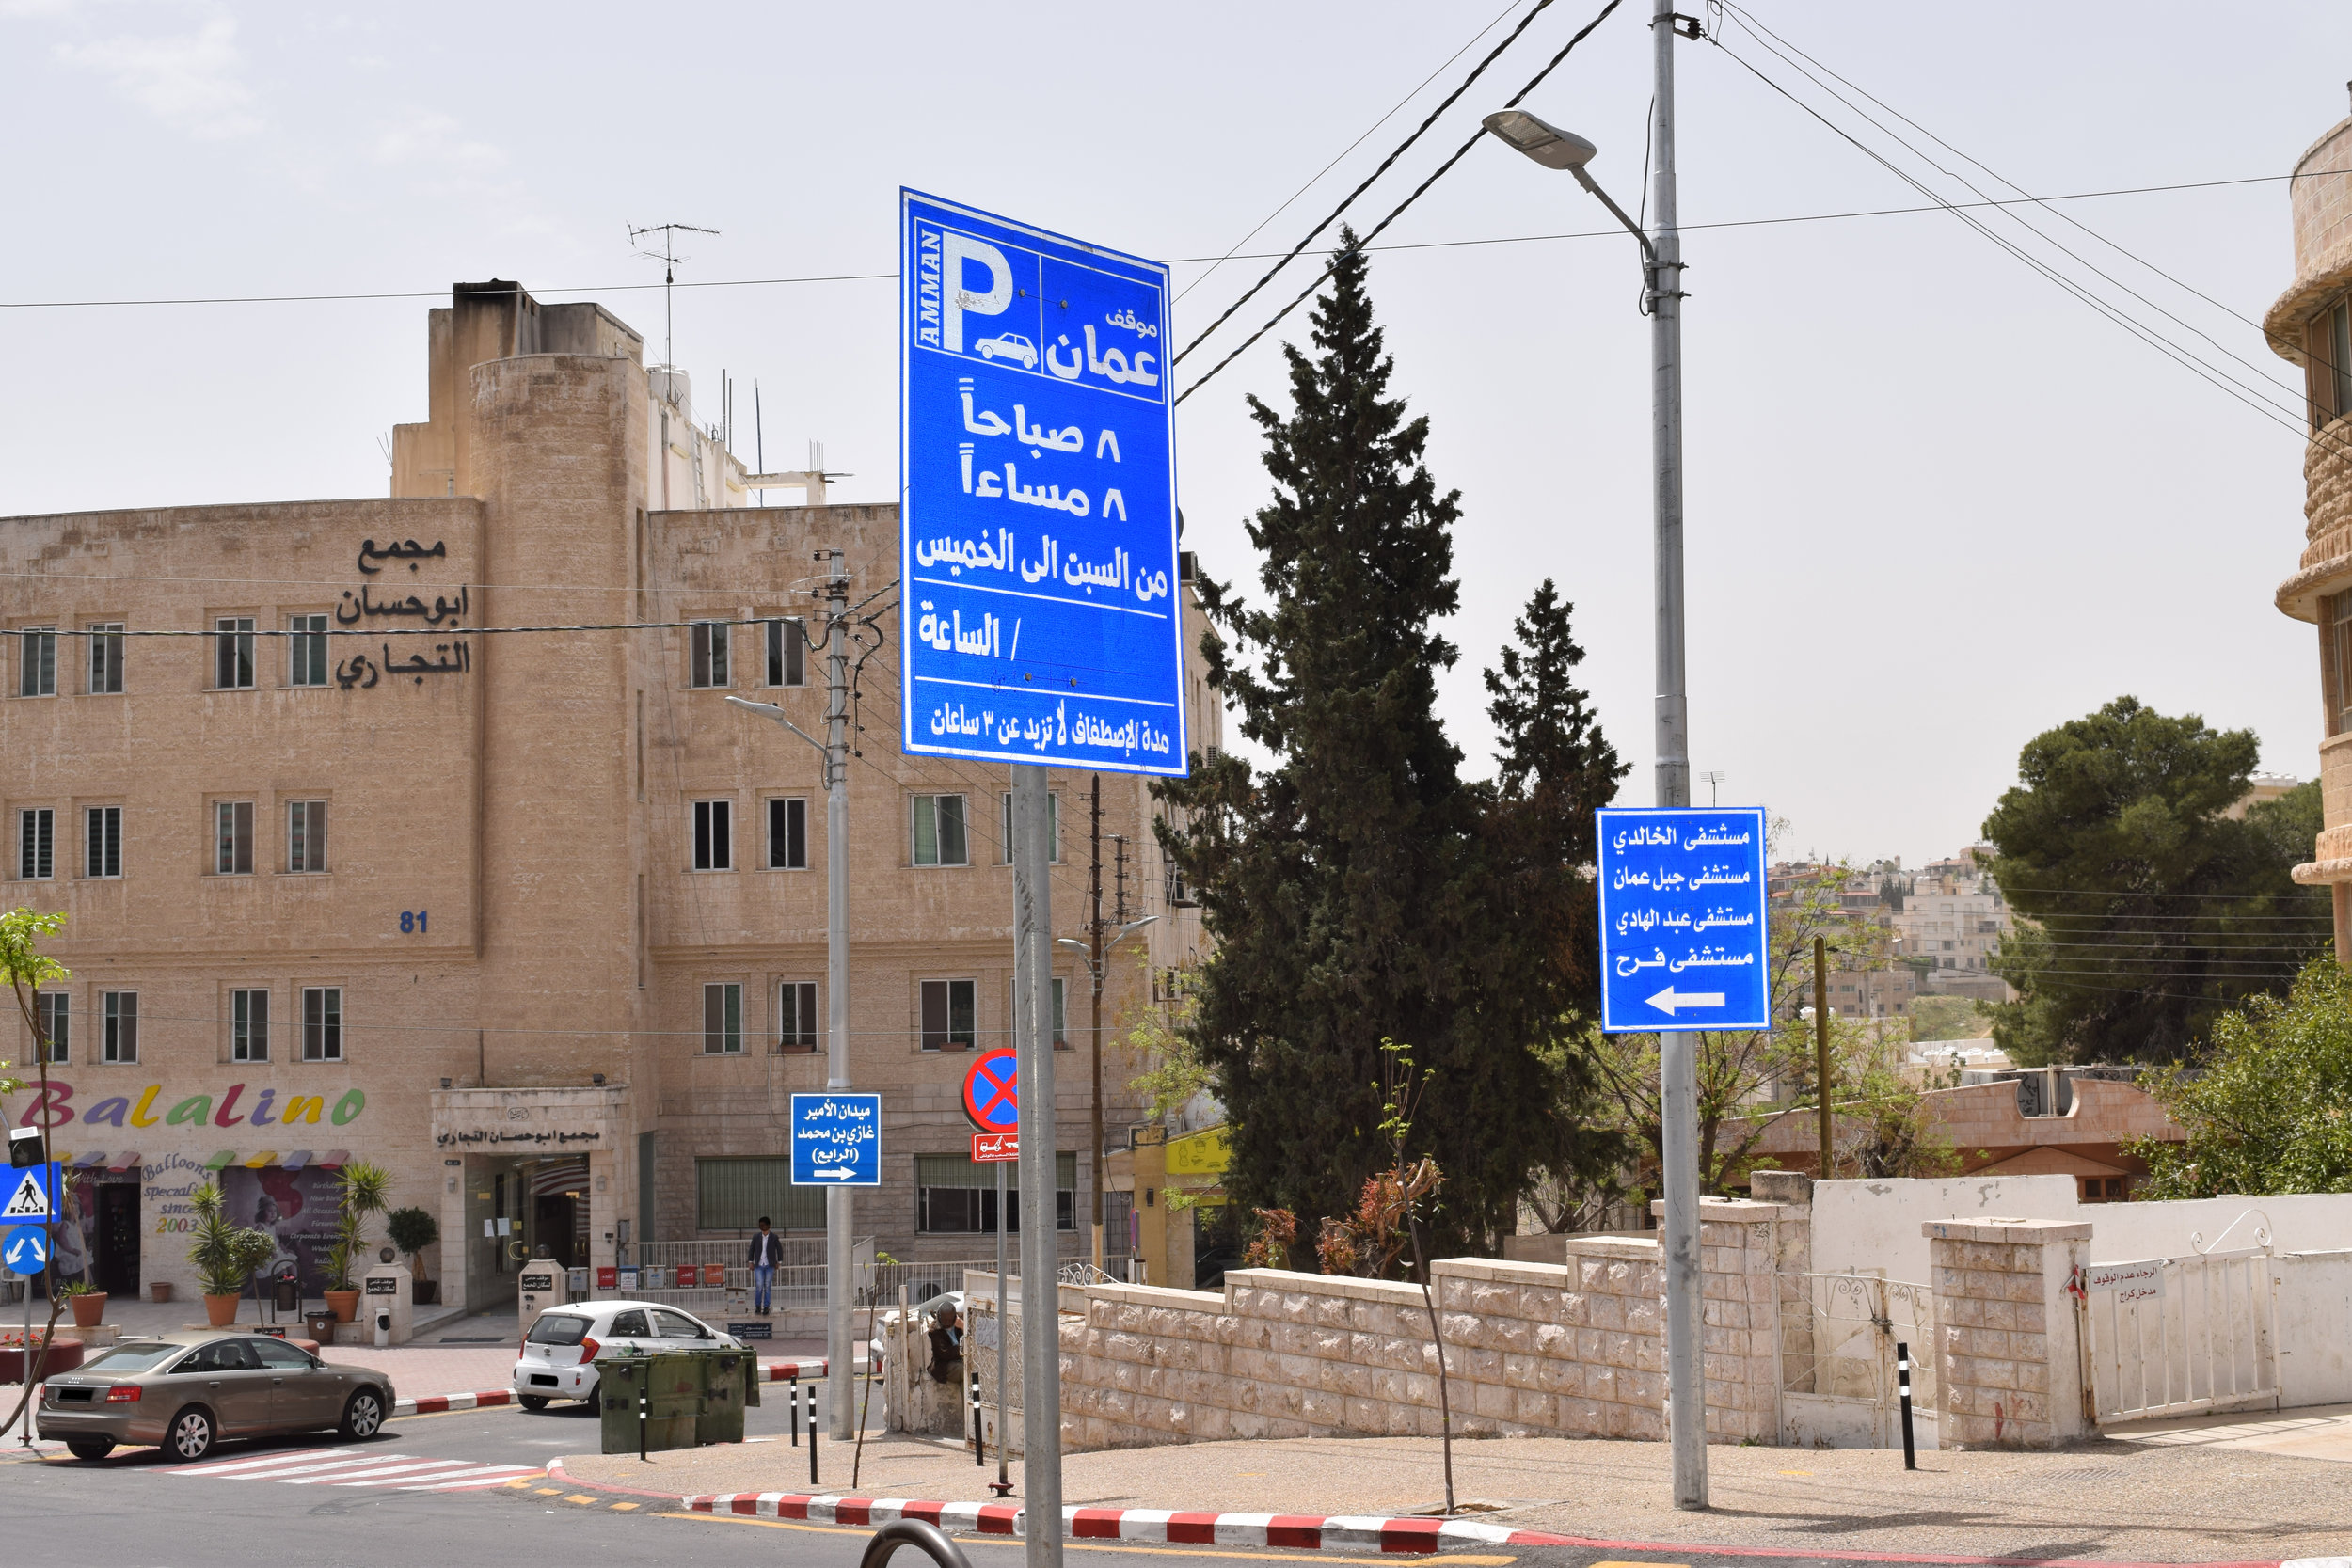 A sign showing the times when street-side parking is free and when it is for a fee.